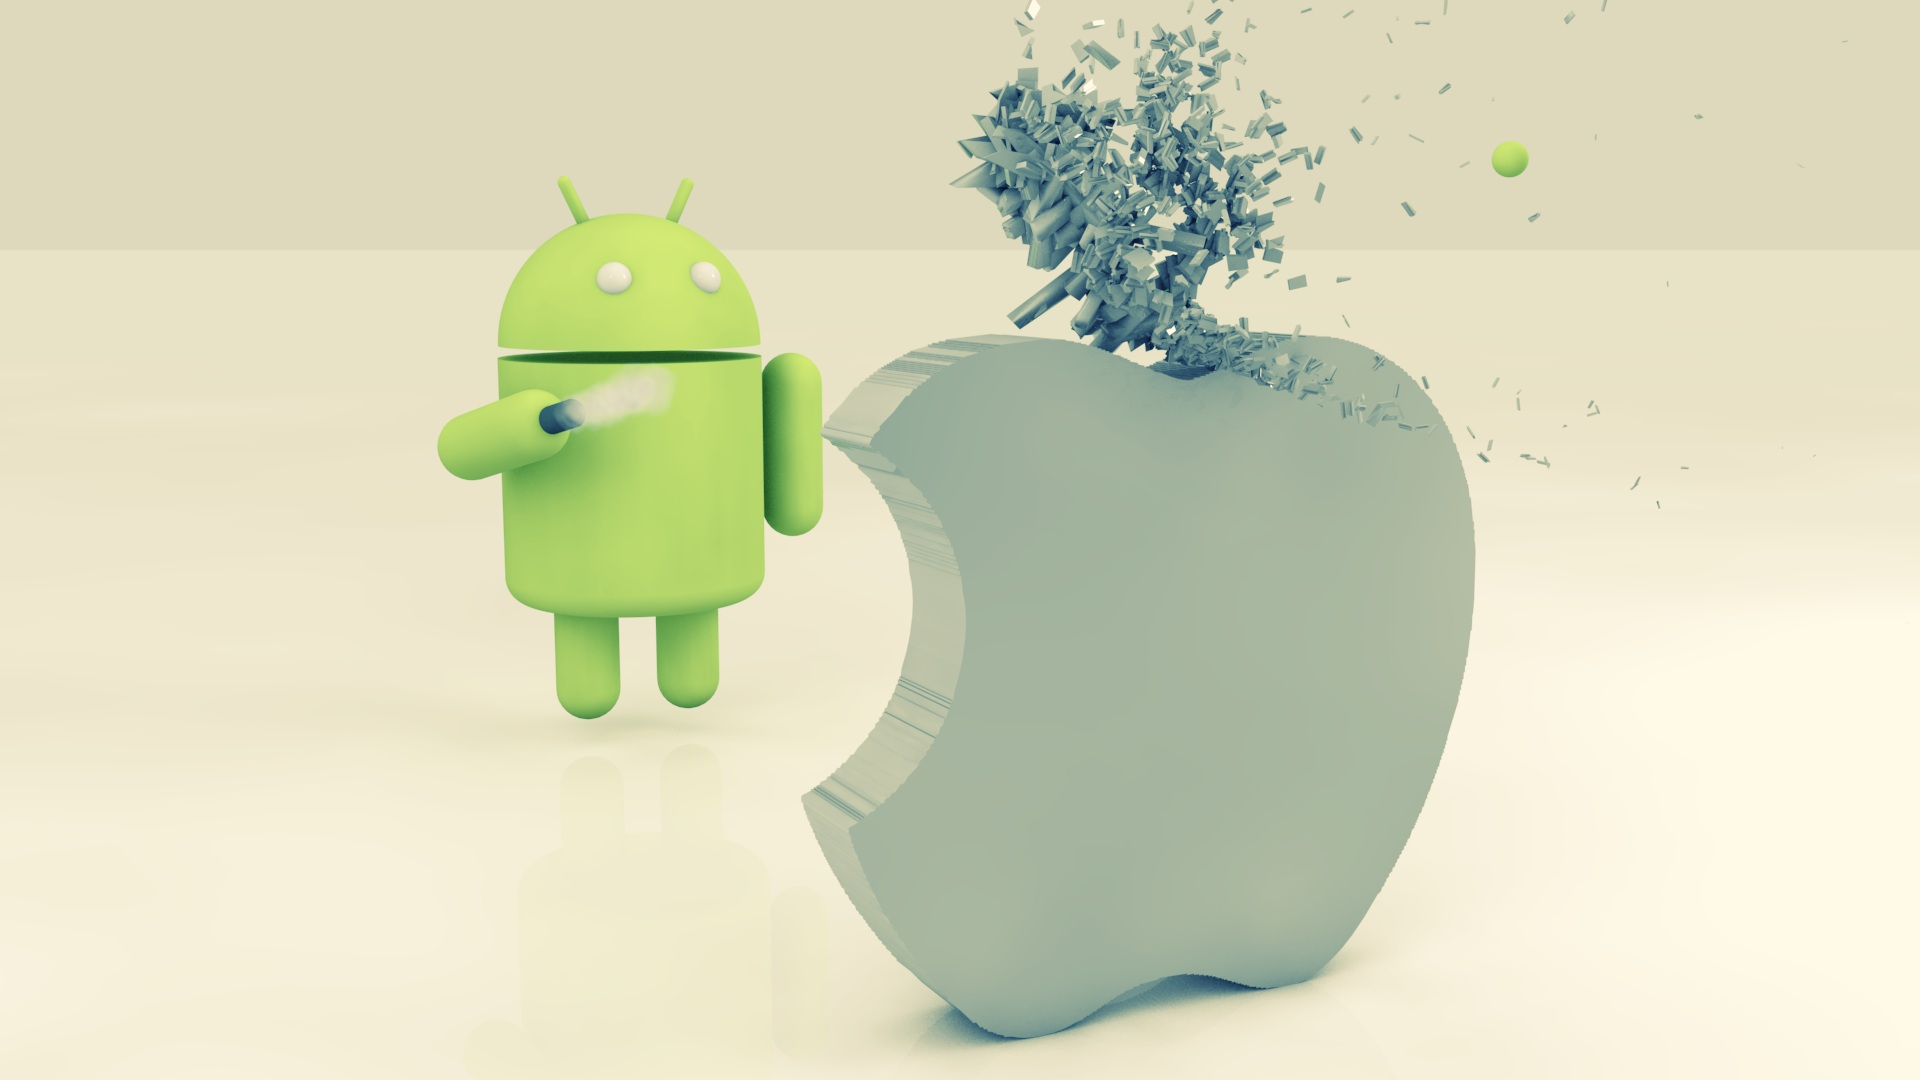 Apple Vs Android